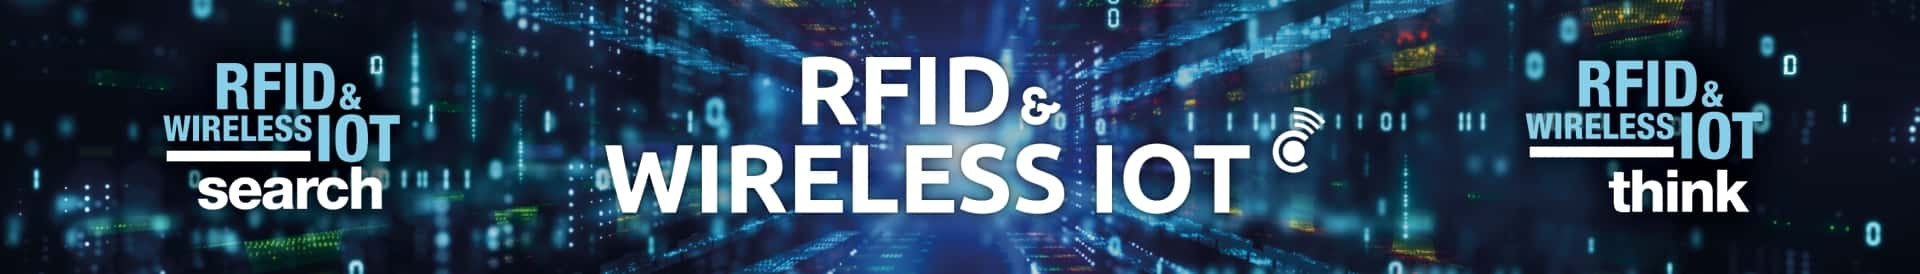 RFID & Wireless IoT in Automotive